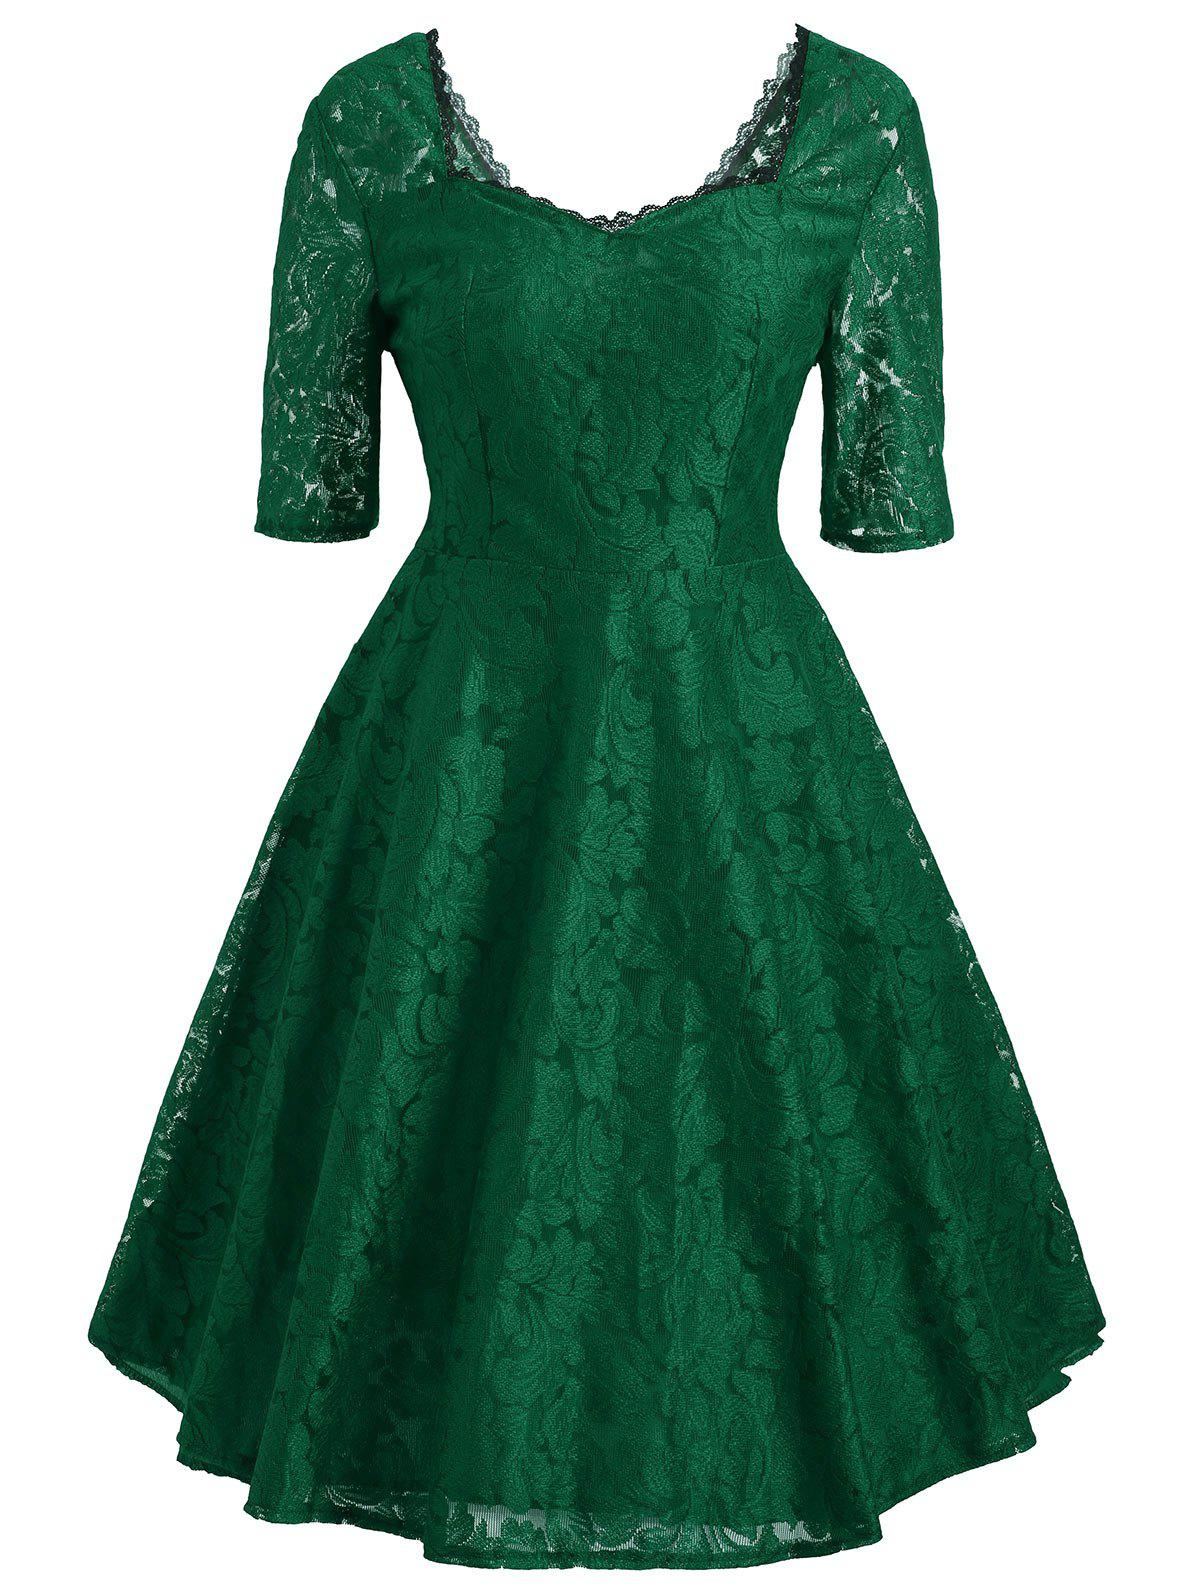 Floral Lace Sweetheart Vintage DressWOMEN<br><br>Size: 2XL; Color: GREEN; Style: Vintage; Material: Cotton,Polyester; Silhouette: A-Line; Dresses Length: Mini; Neckline: Sweetheart Neck; Sleeve Length: Half Sleeves; Pattern Type: Floral; With Belt: No; Season: Fall; Weight: 0.3500kg; Package Contents: 1 x Dress;